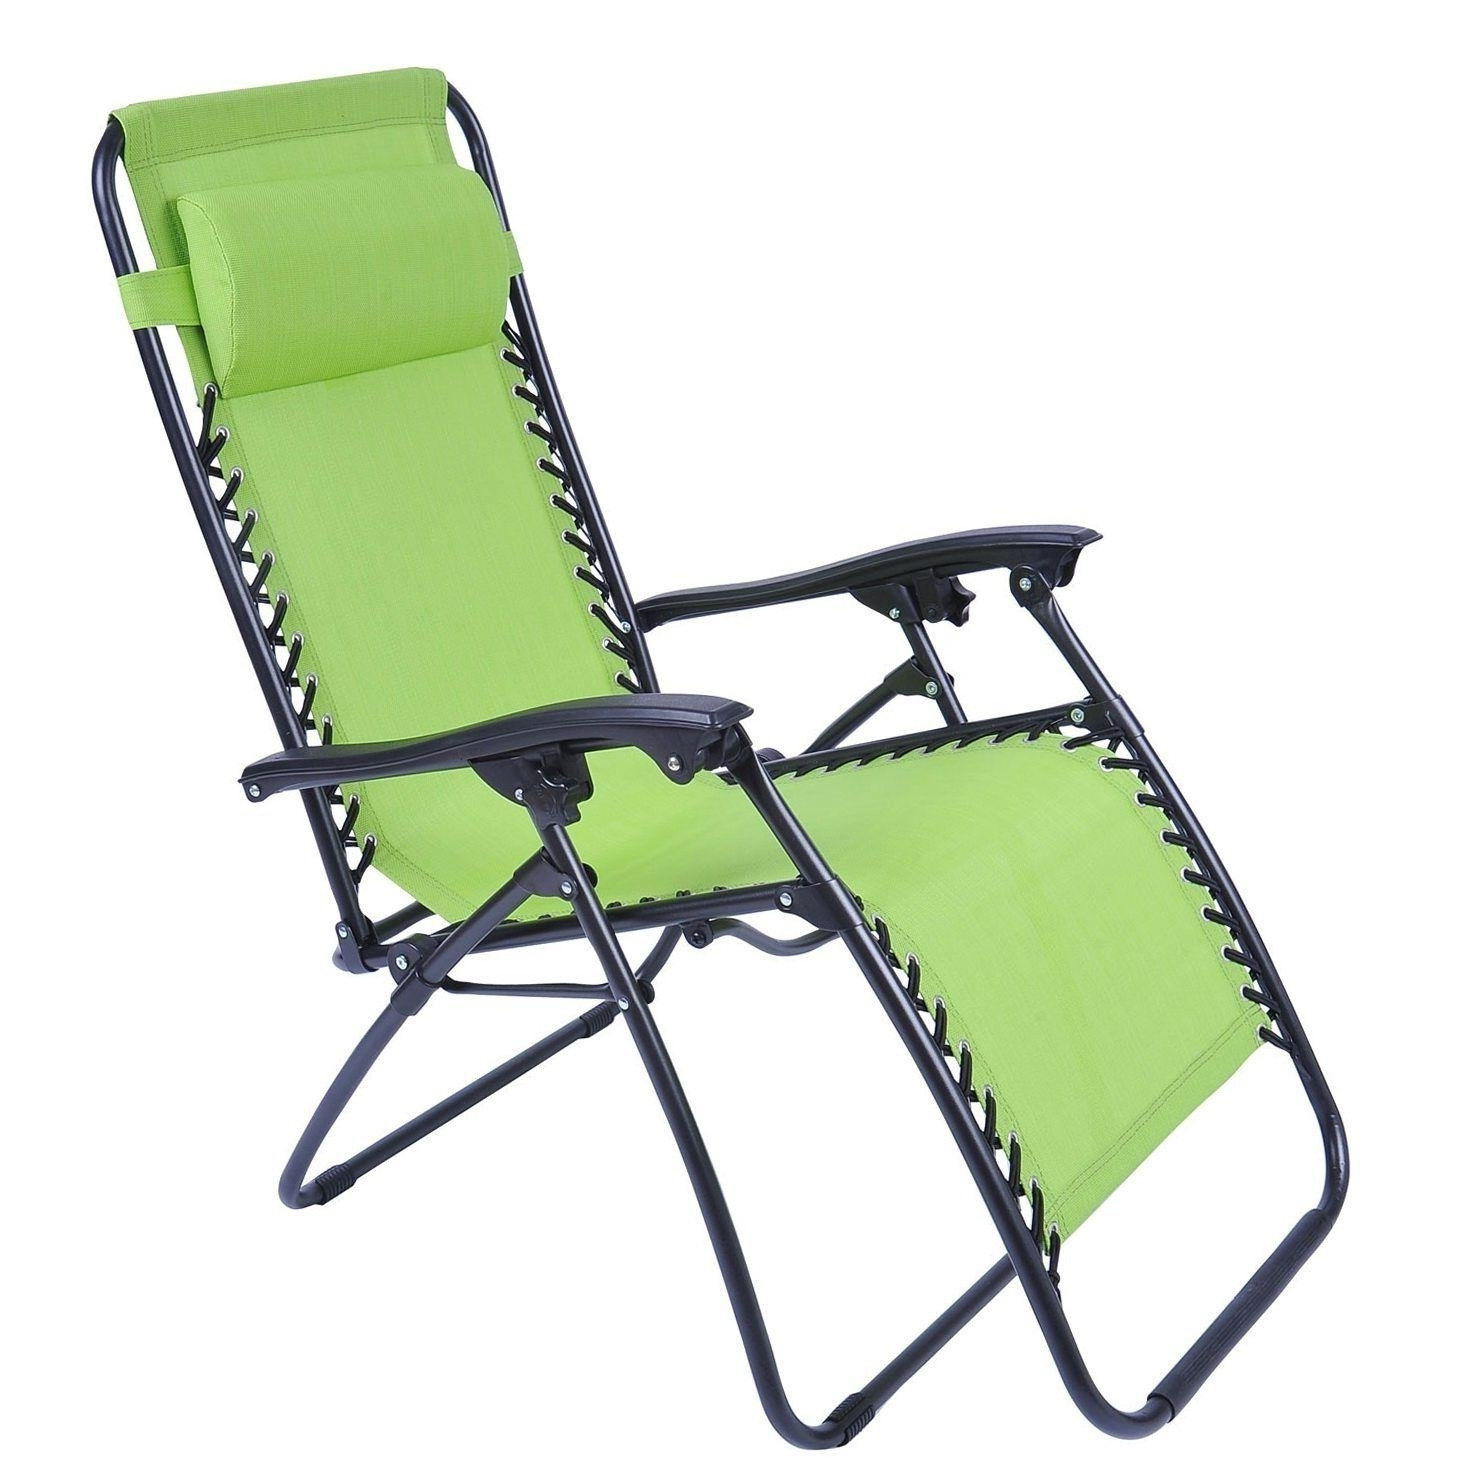 Furniture : Outdoor Loveseat Cushions Inspirational Lounge Chair Intended For Trendy Folding Chaise Lounge Chairs For Outdoor (View 10 of 15)